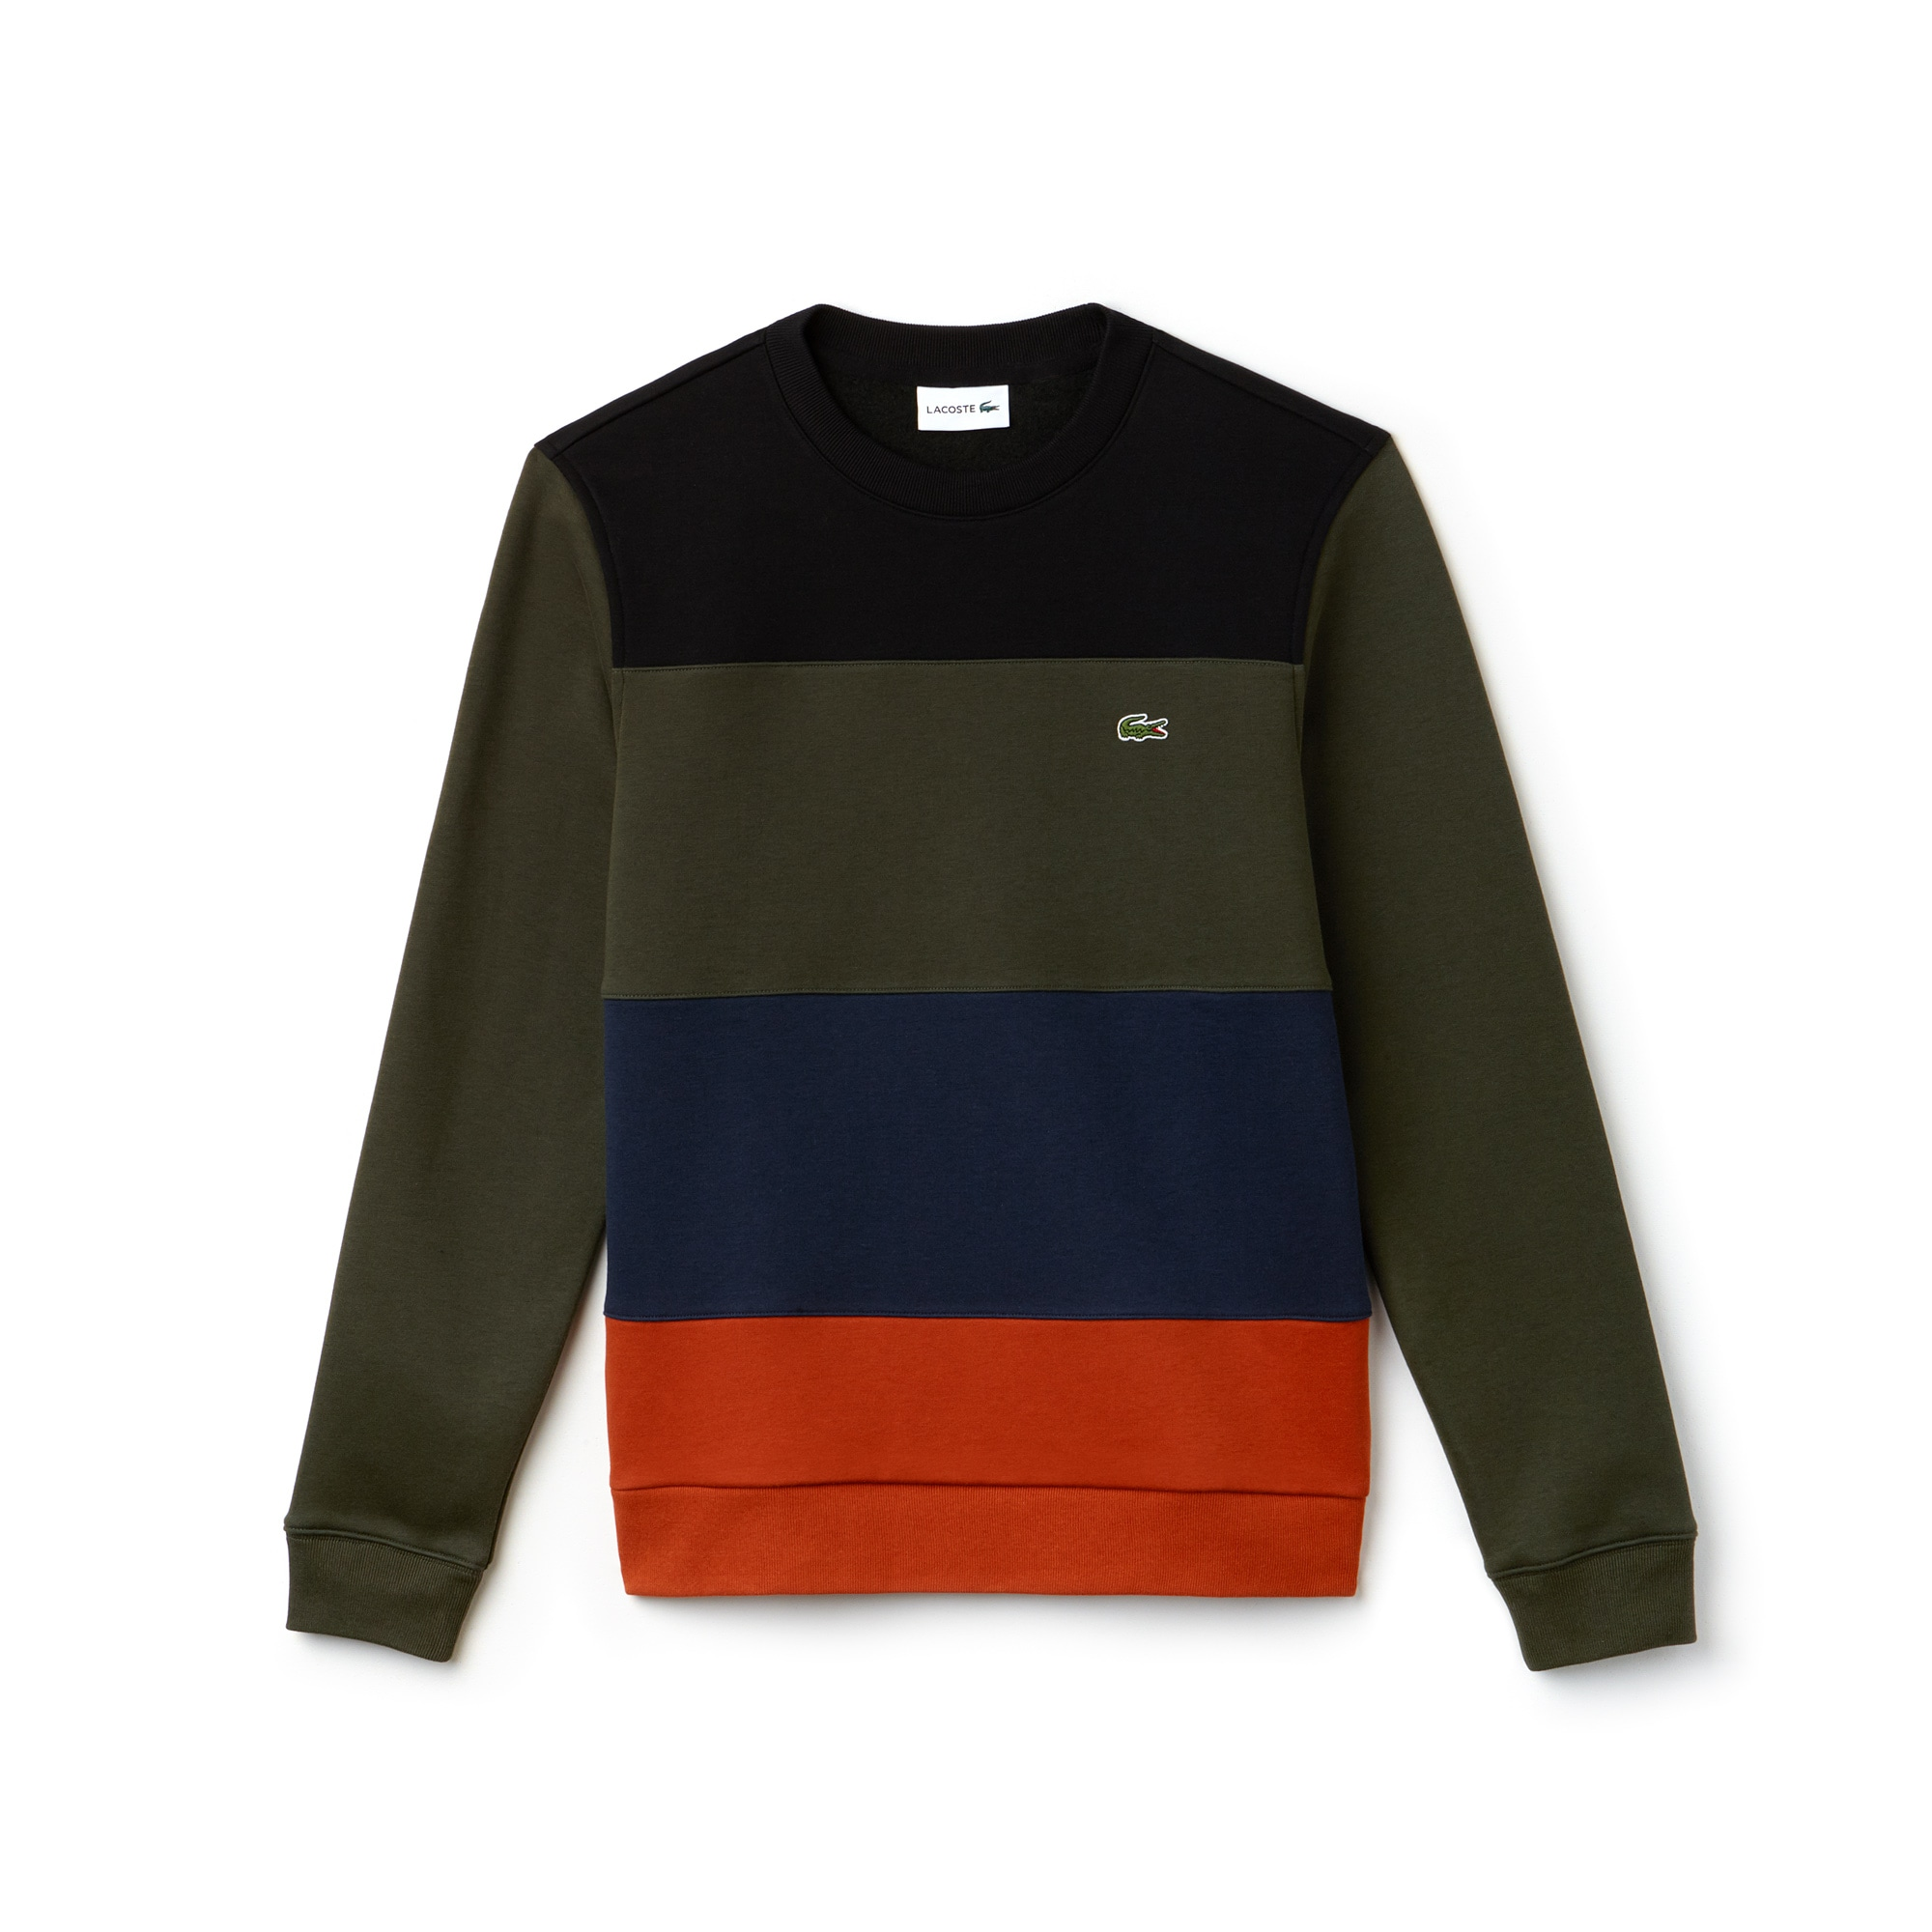 Men's Crew Neck Colorblock Fleece Sweatshirt